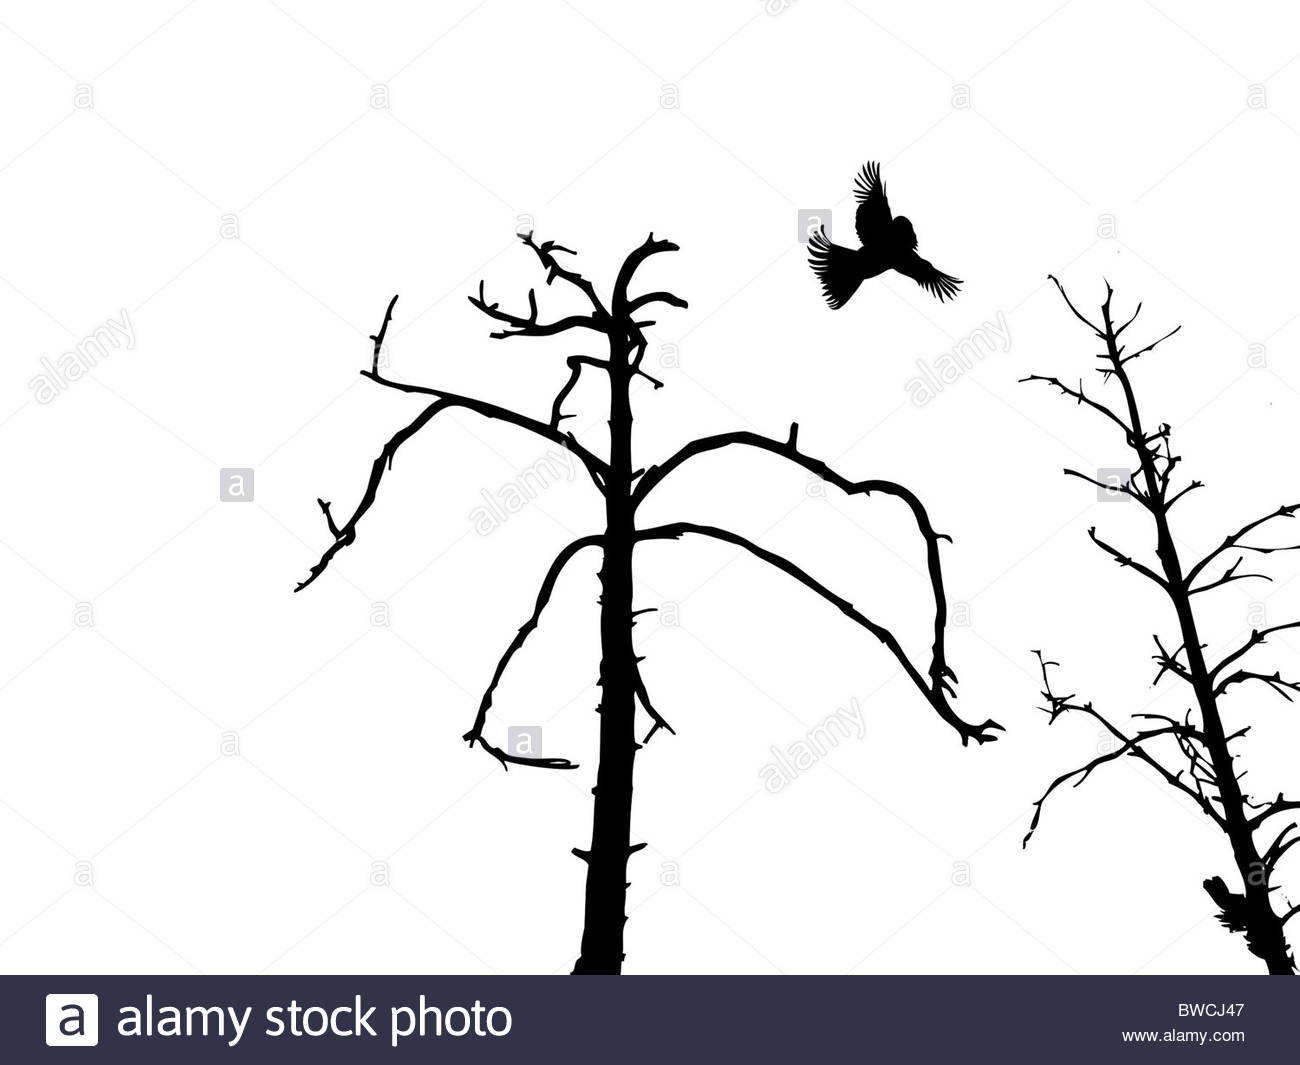 1300x1065 Silhouette Dry Tree And Birds Isolated On White Background Stock